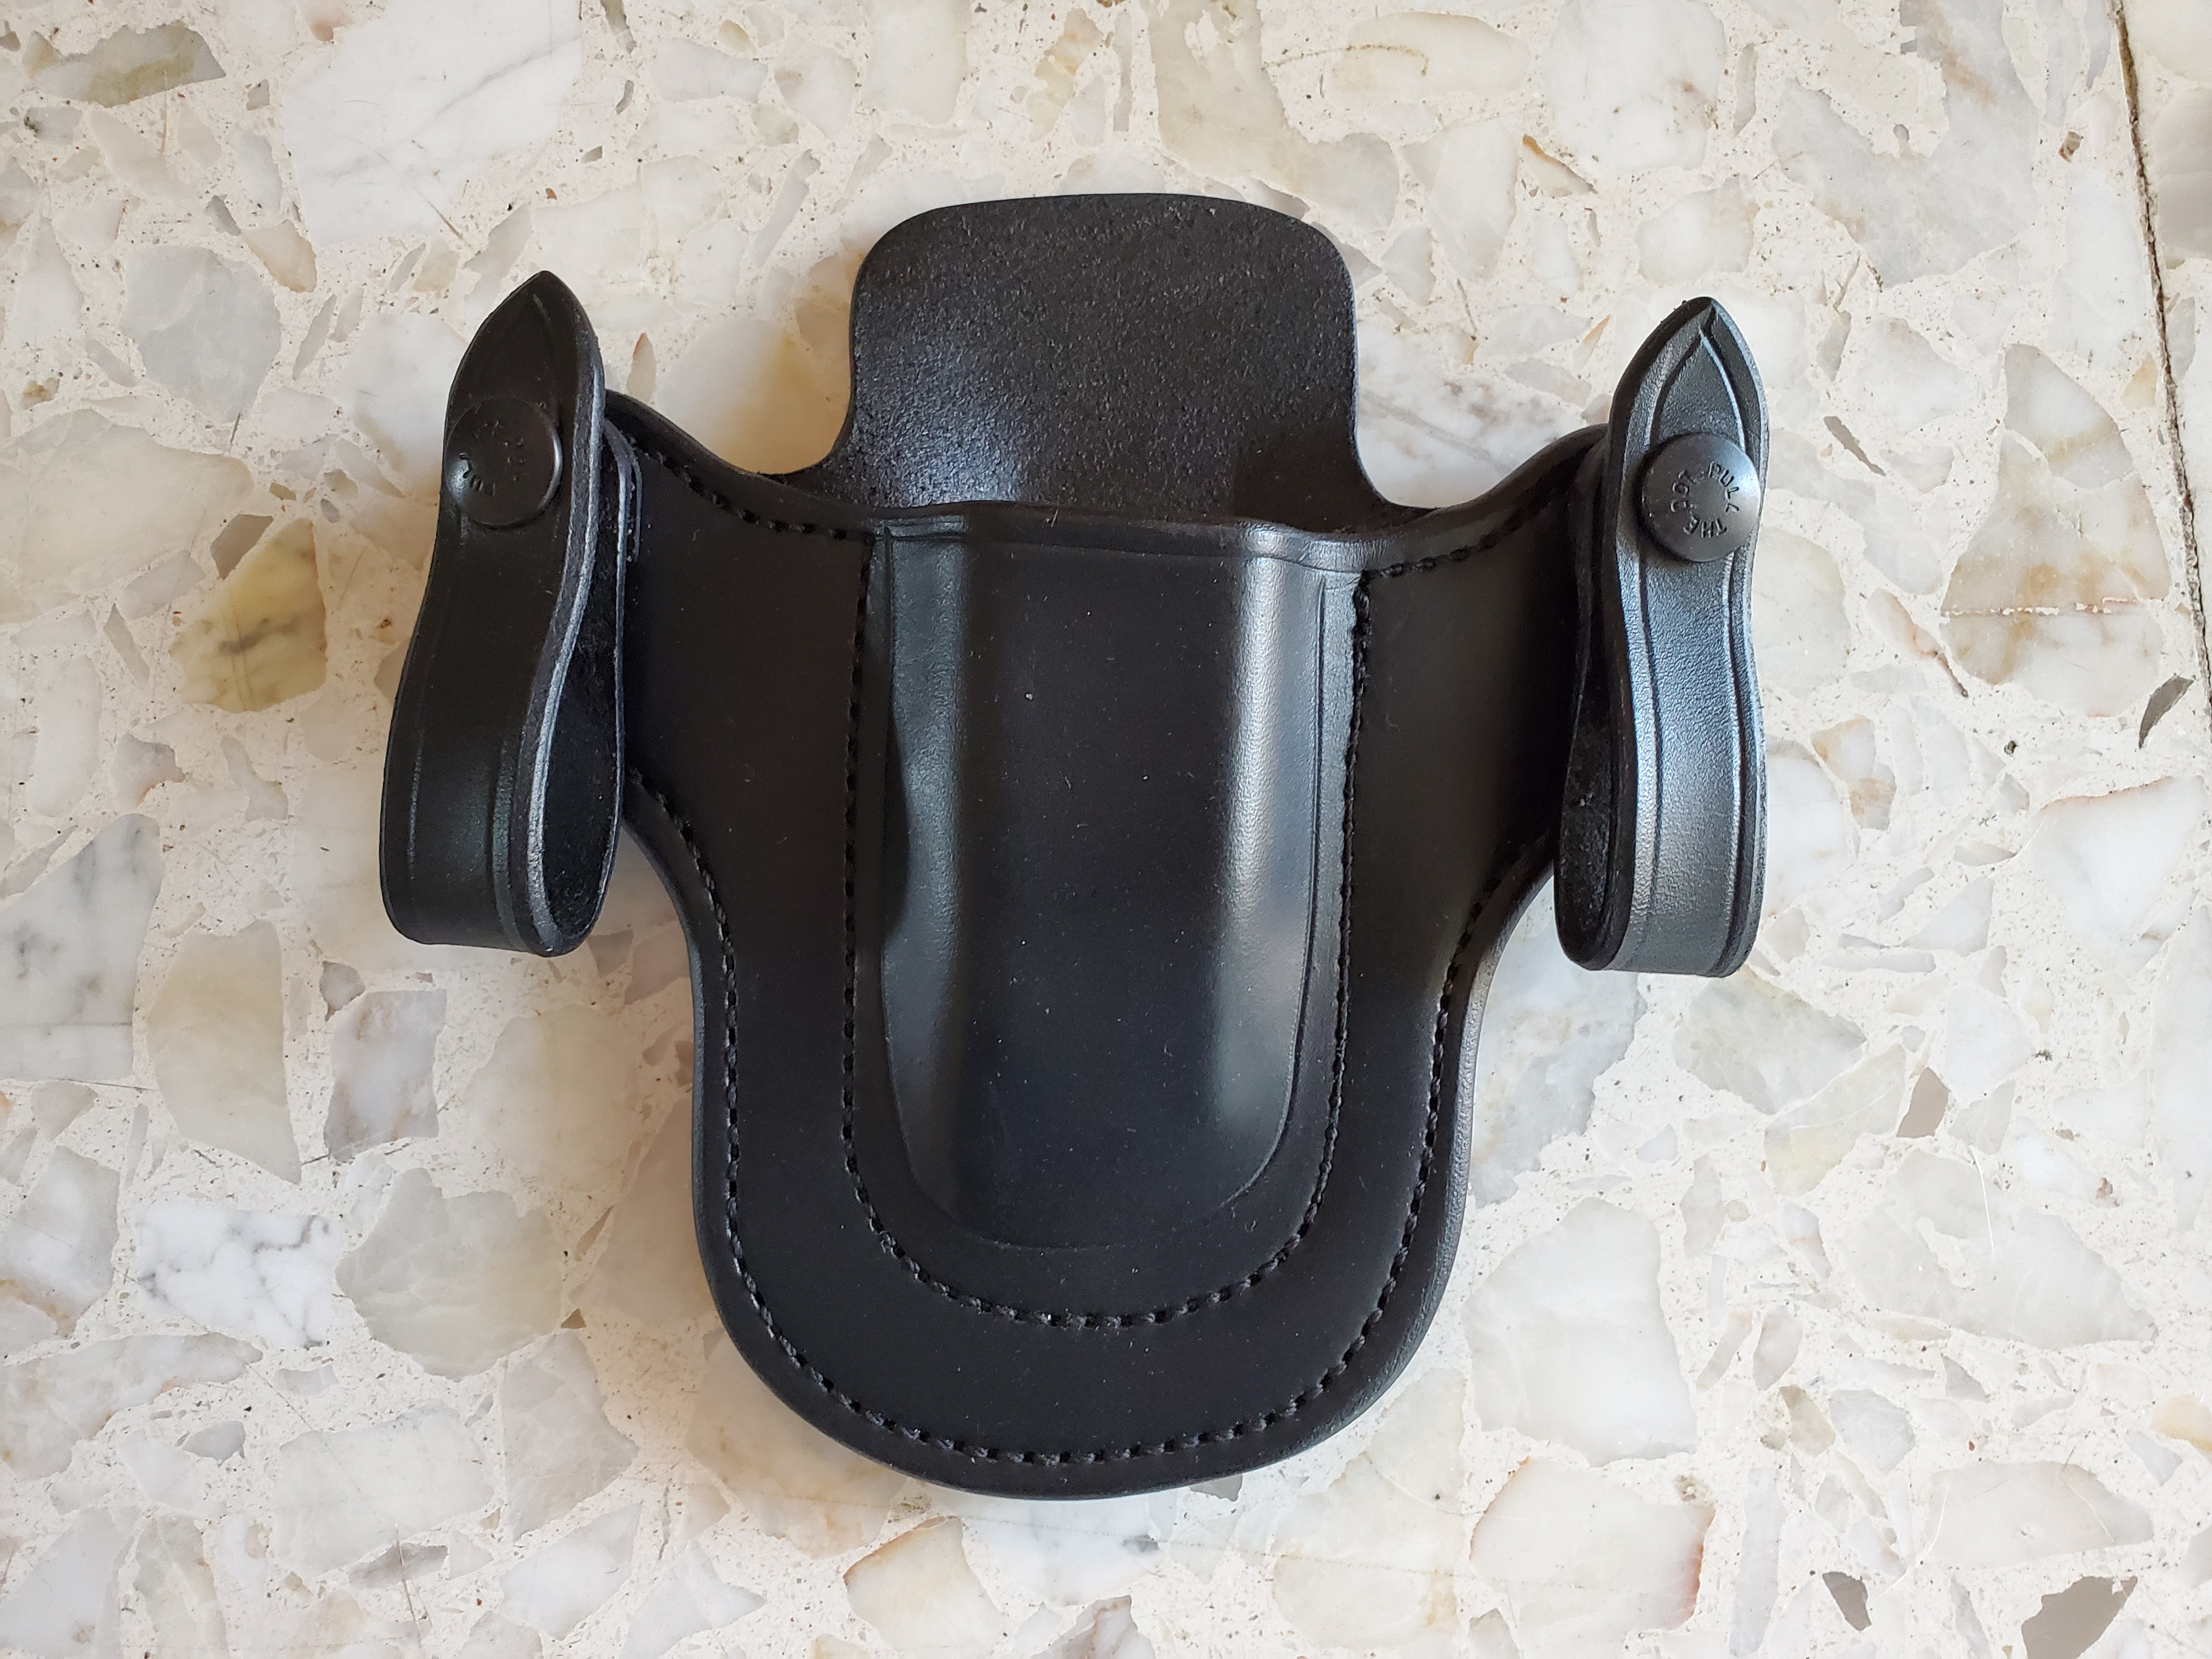 Selling New Nelson Holsters- 10% off Retail and No Wait-20190508_170944.jpg